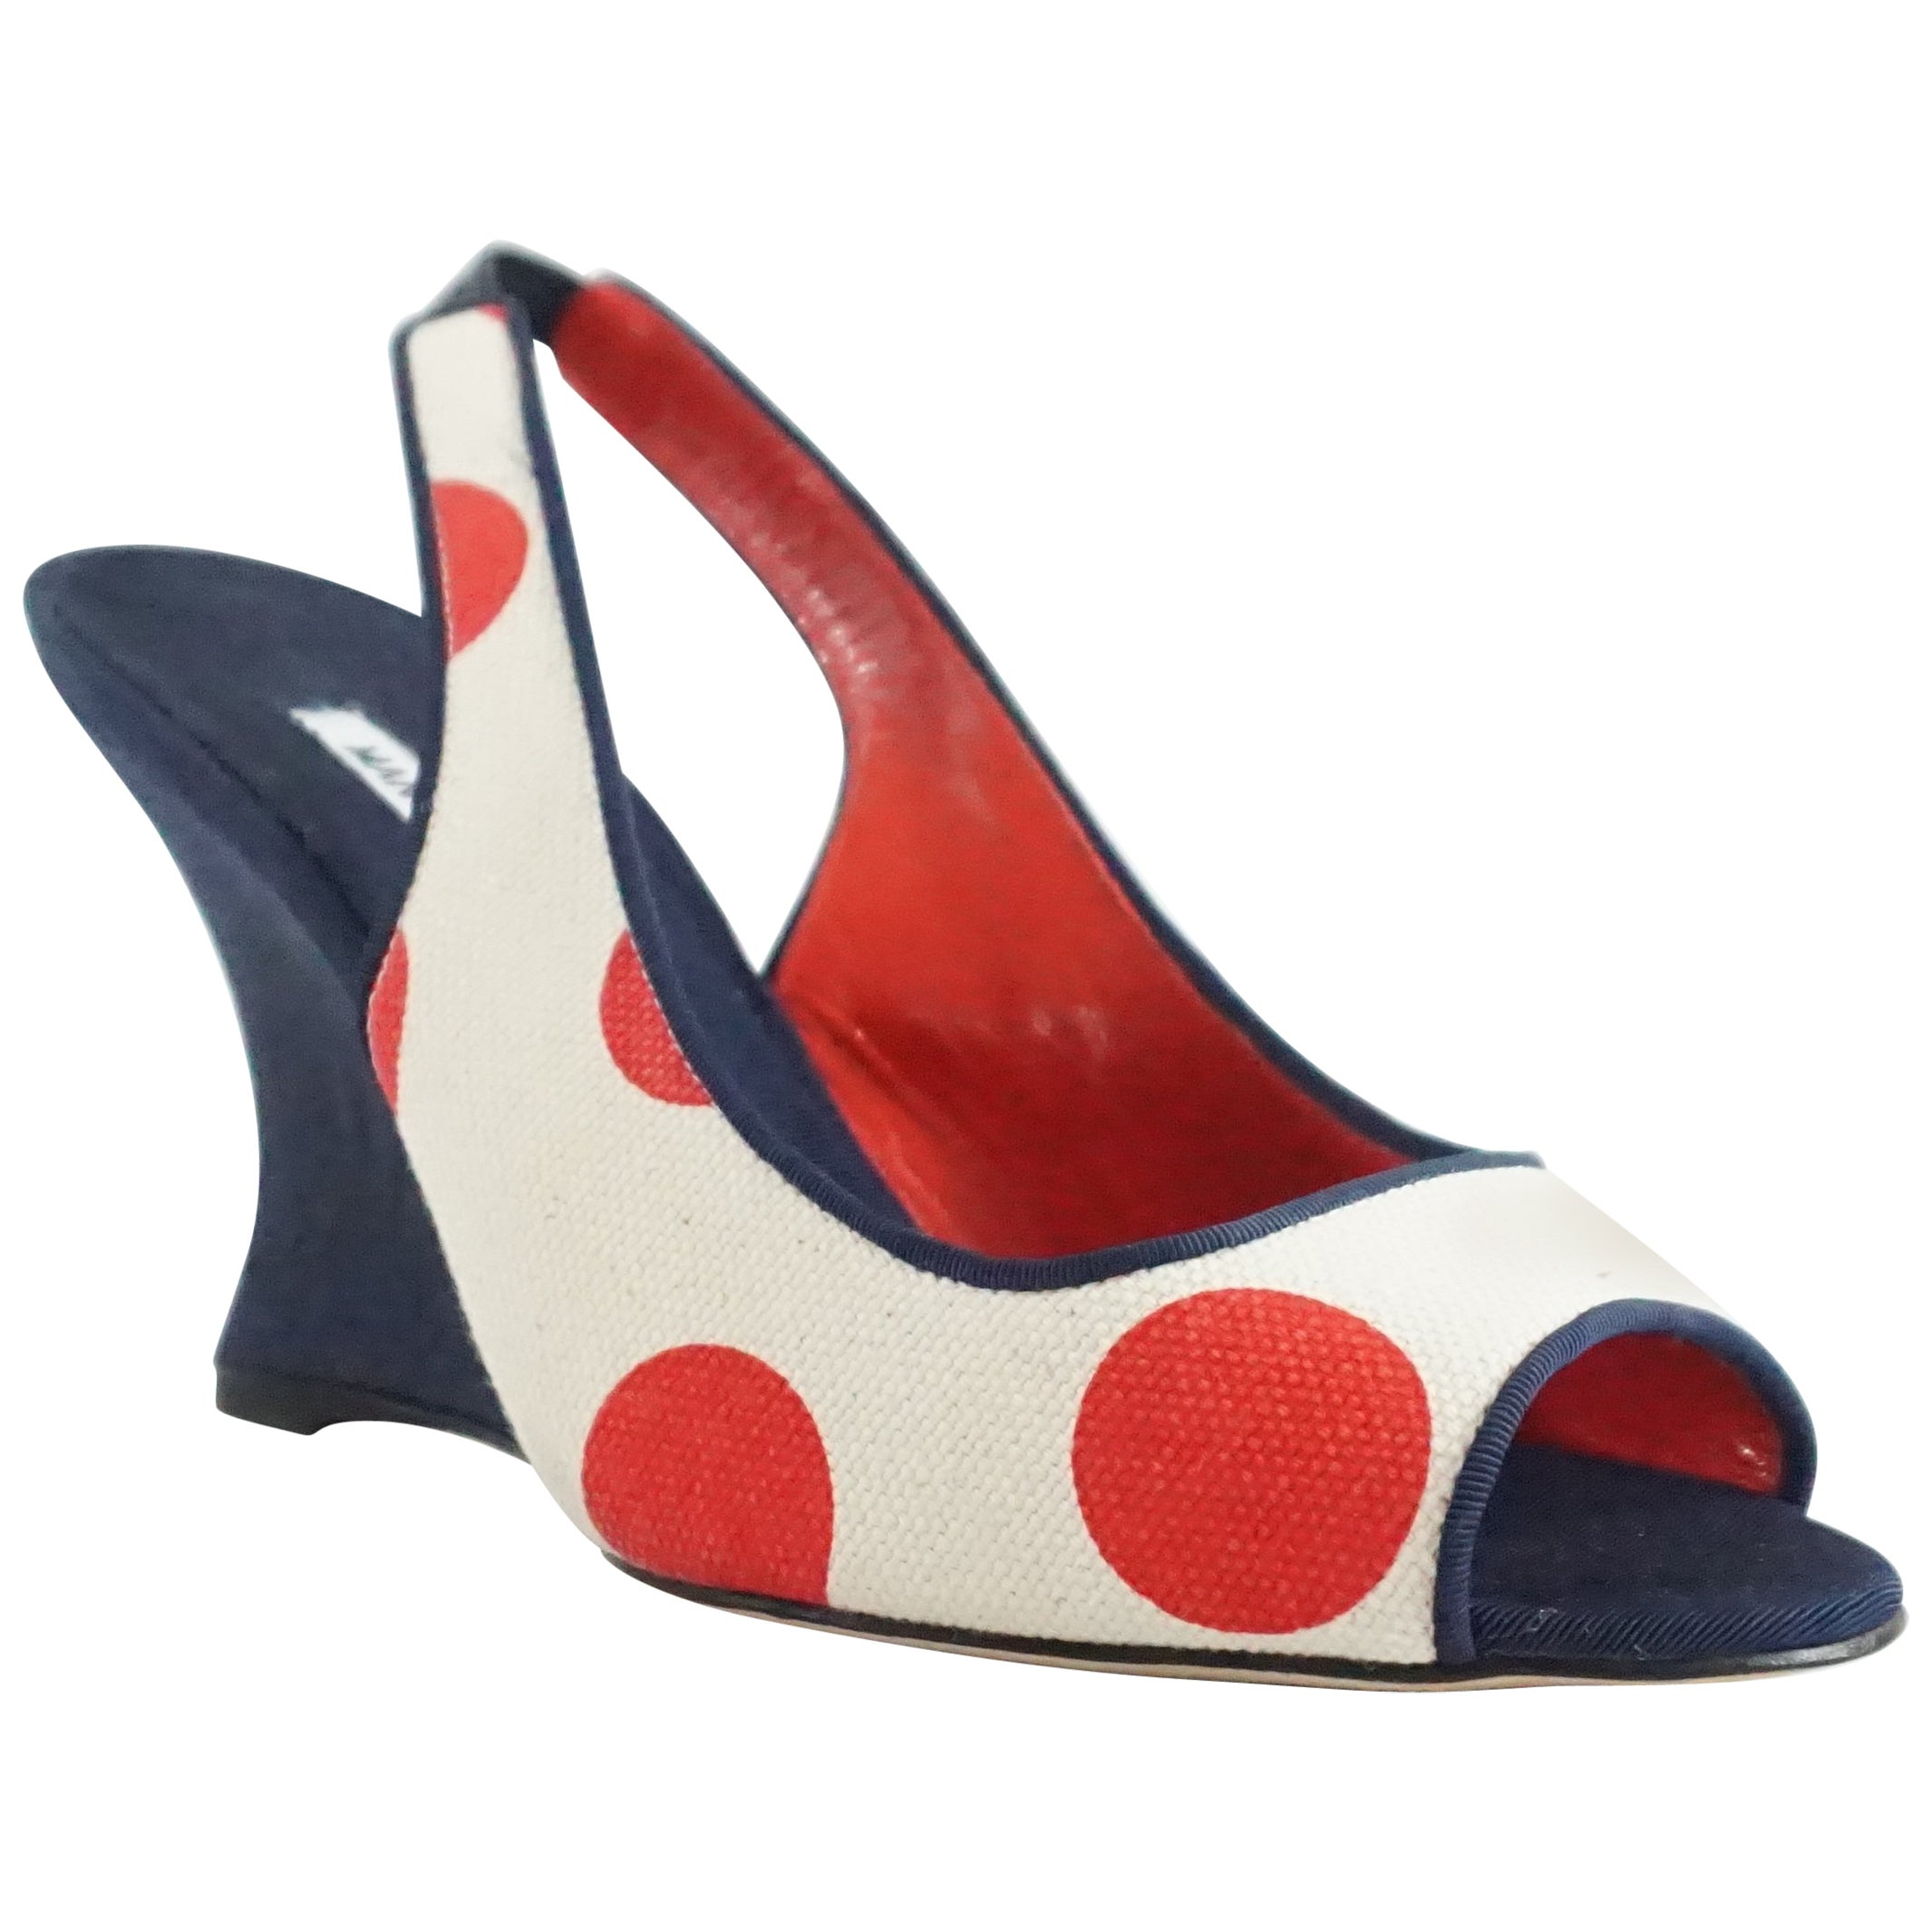 eb3ce9c1fa4 Manolo Blahnik Cream and Red Polka Dot Navy Wedges, Size 37.5